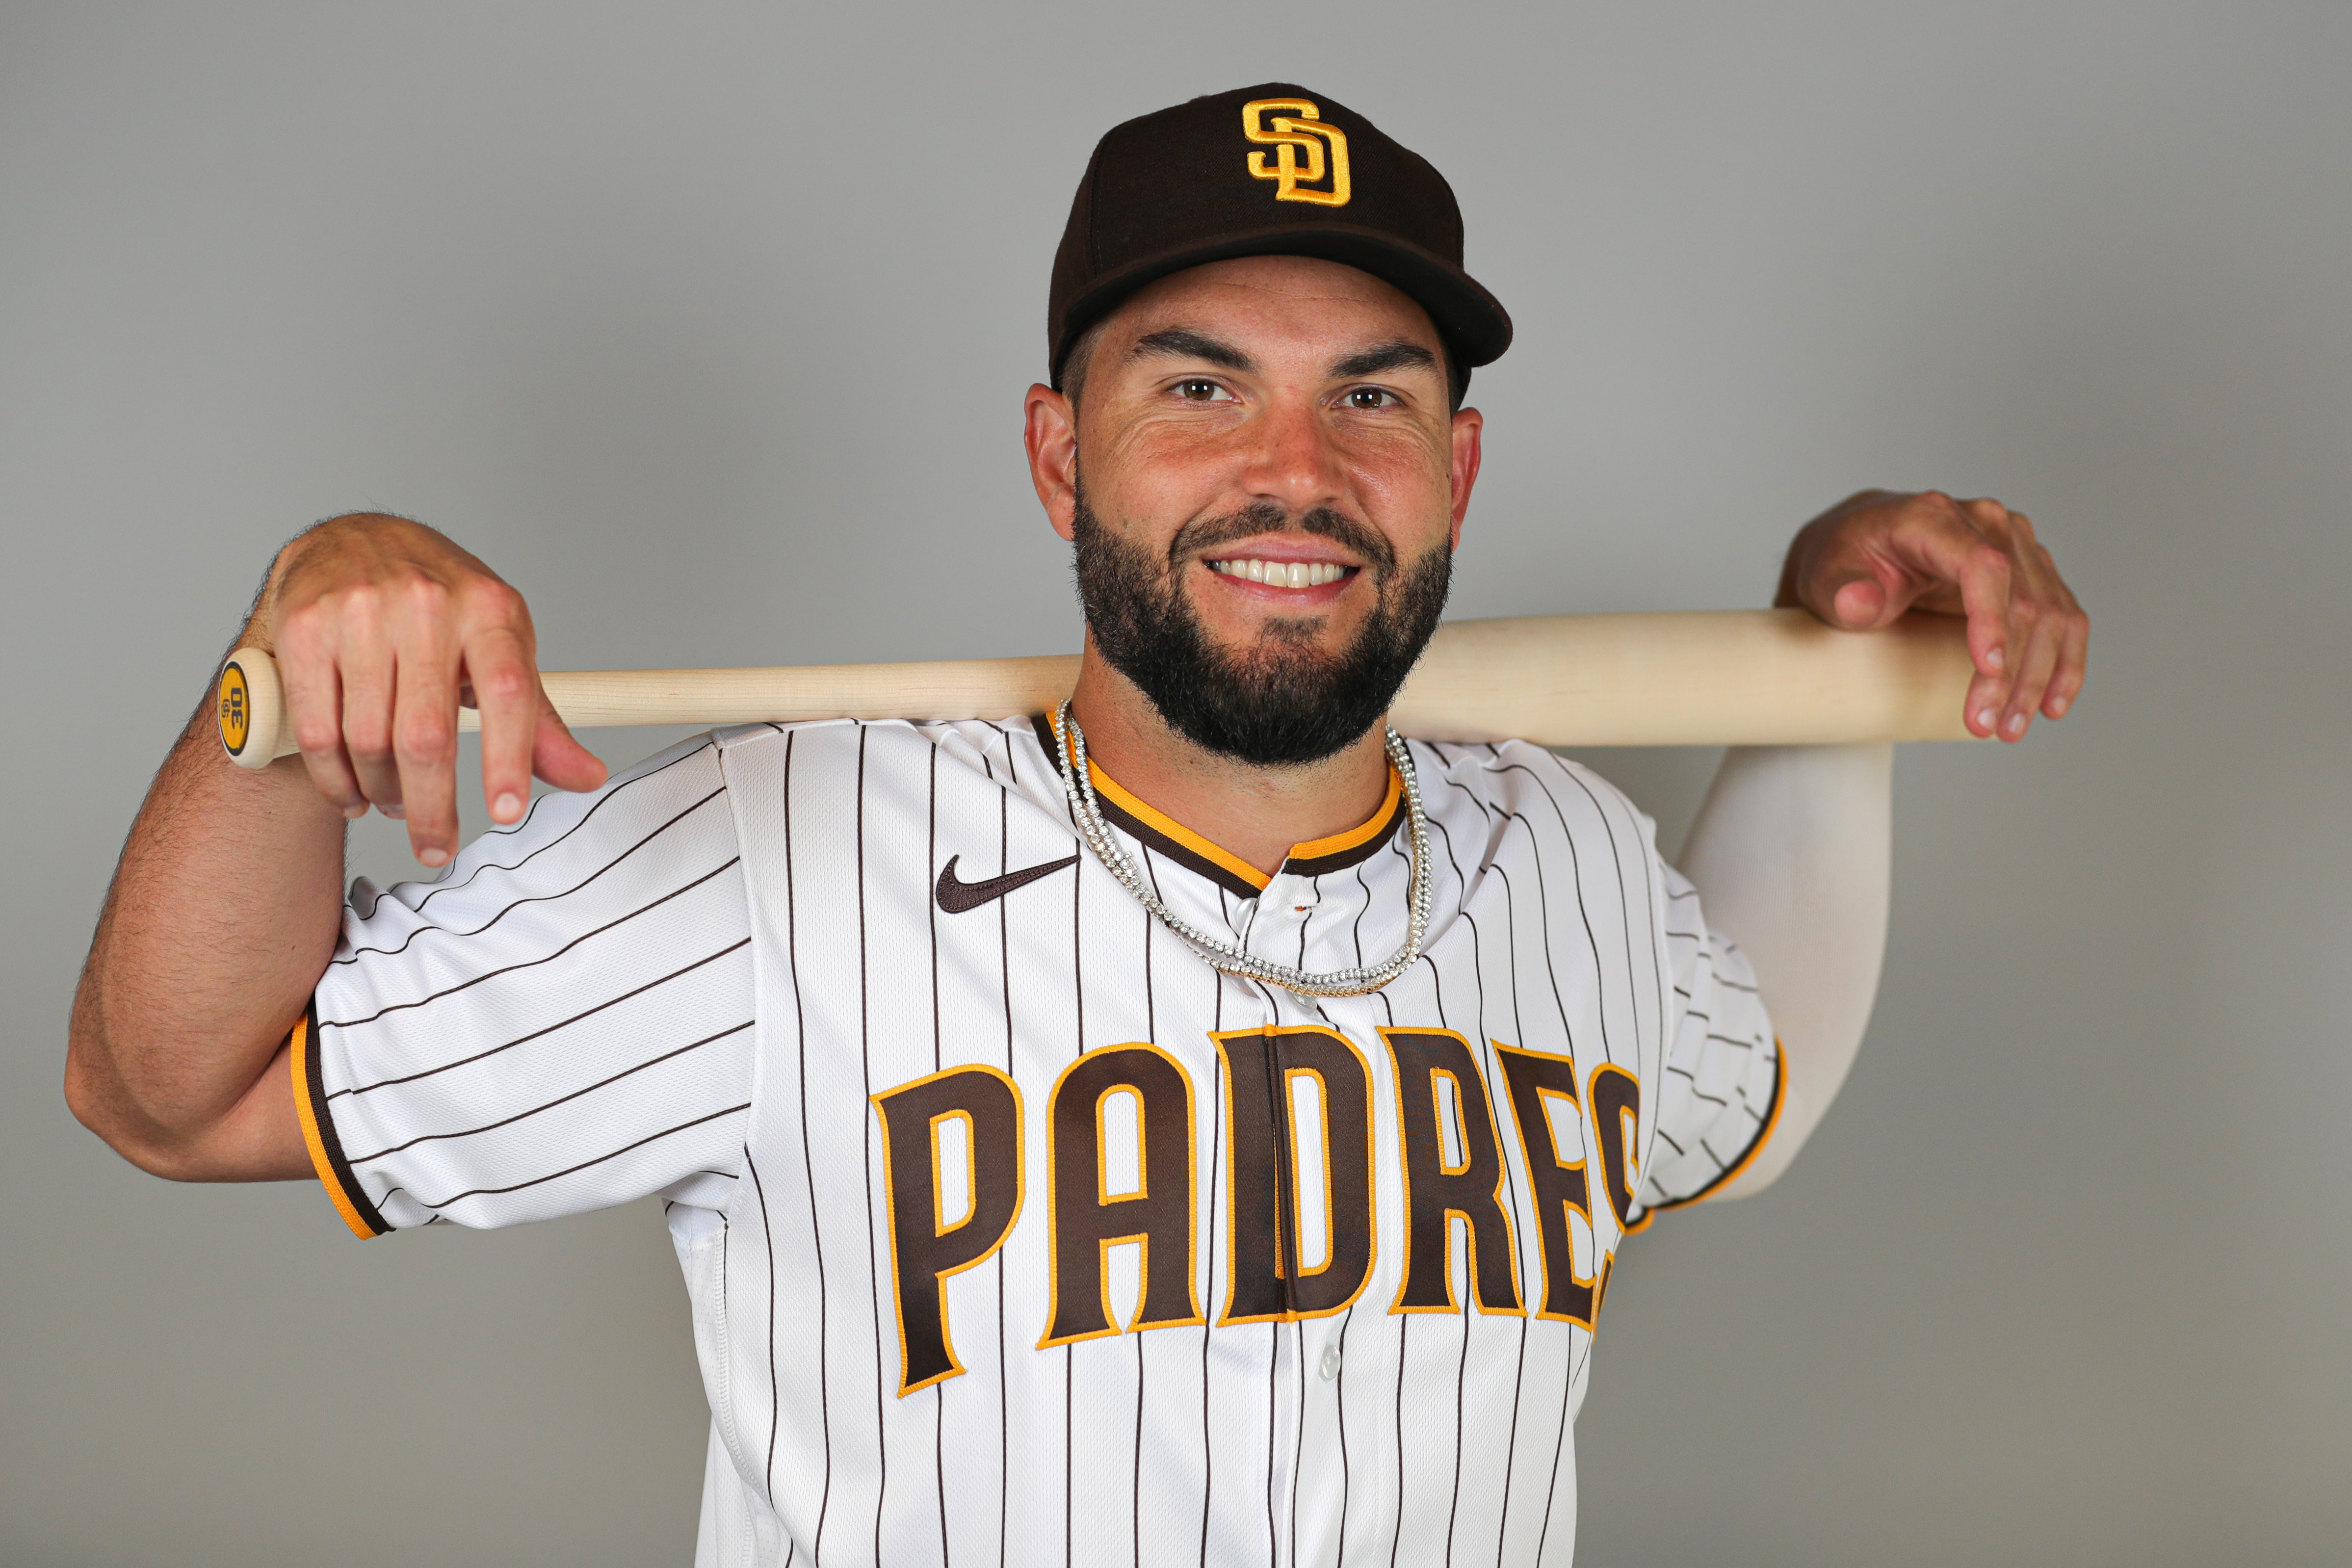 Eric Hosmer of the San Diego Padres poses for a photo during Photo Day at Peoria Sports Complex on February 20, 2020 in Peoria, Arizona.